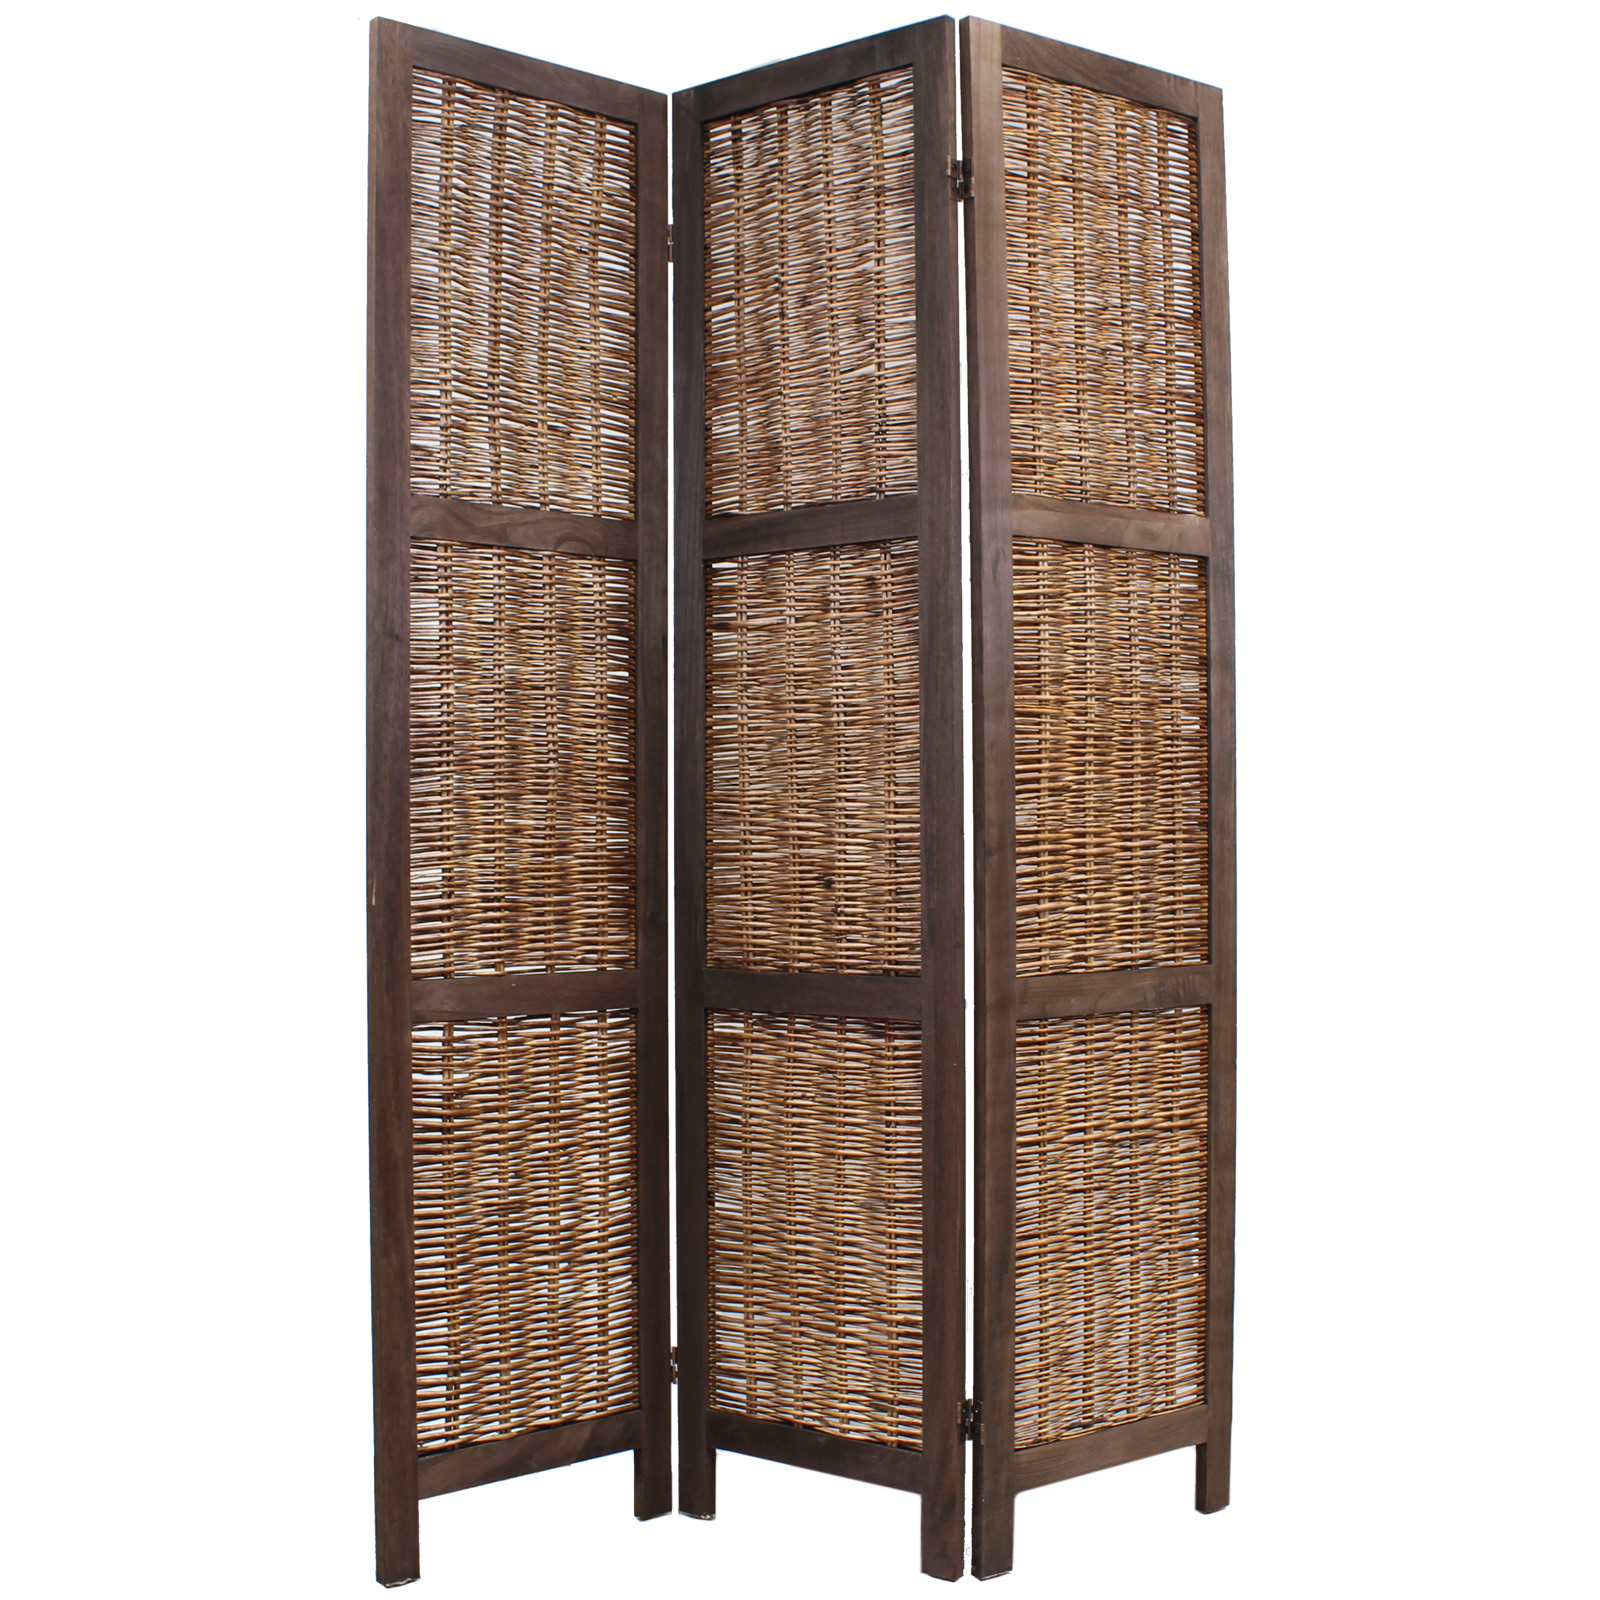 Wooden framed wicker room divider privacy screen partition shabby chic vintage ebay - Room divider ...